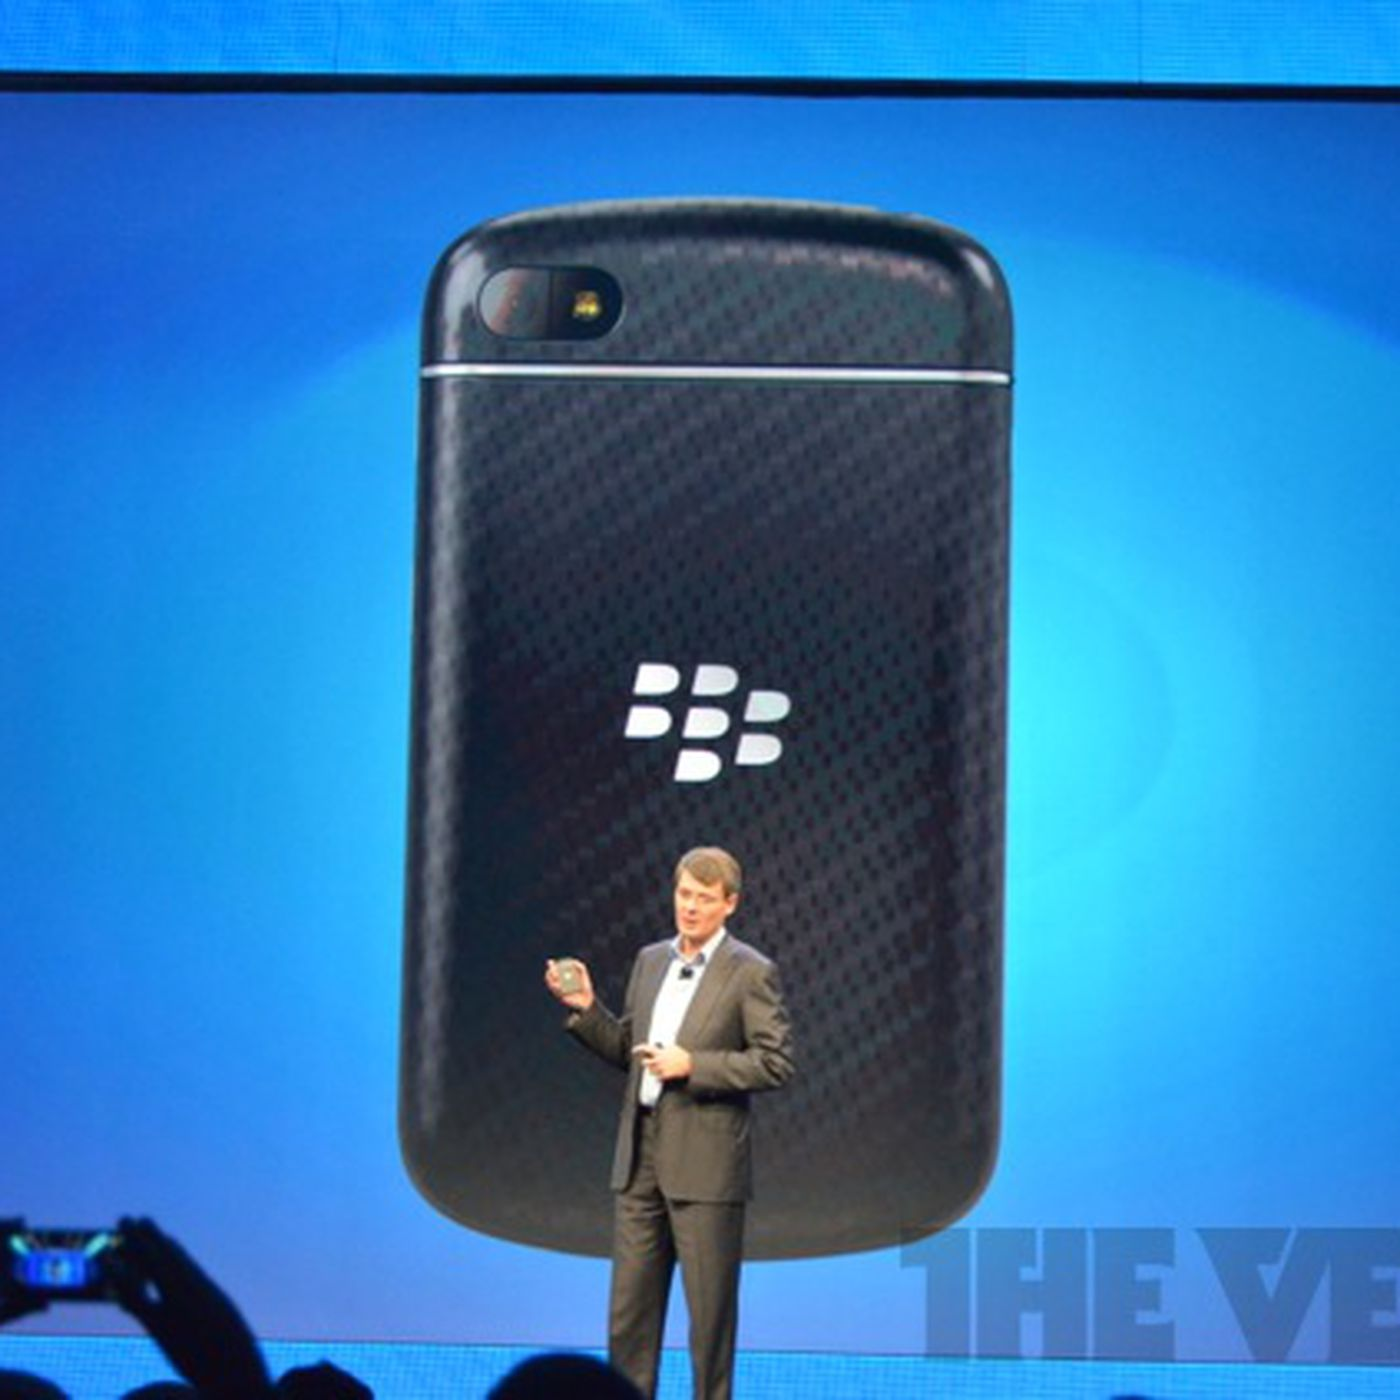 BlackBerry 10 event: RIM rebrands, the Q10, Z10, and